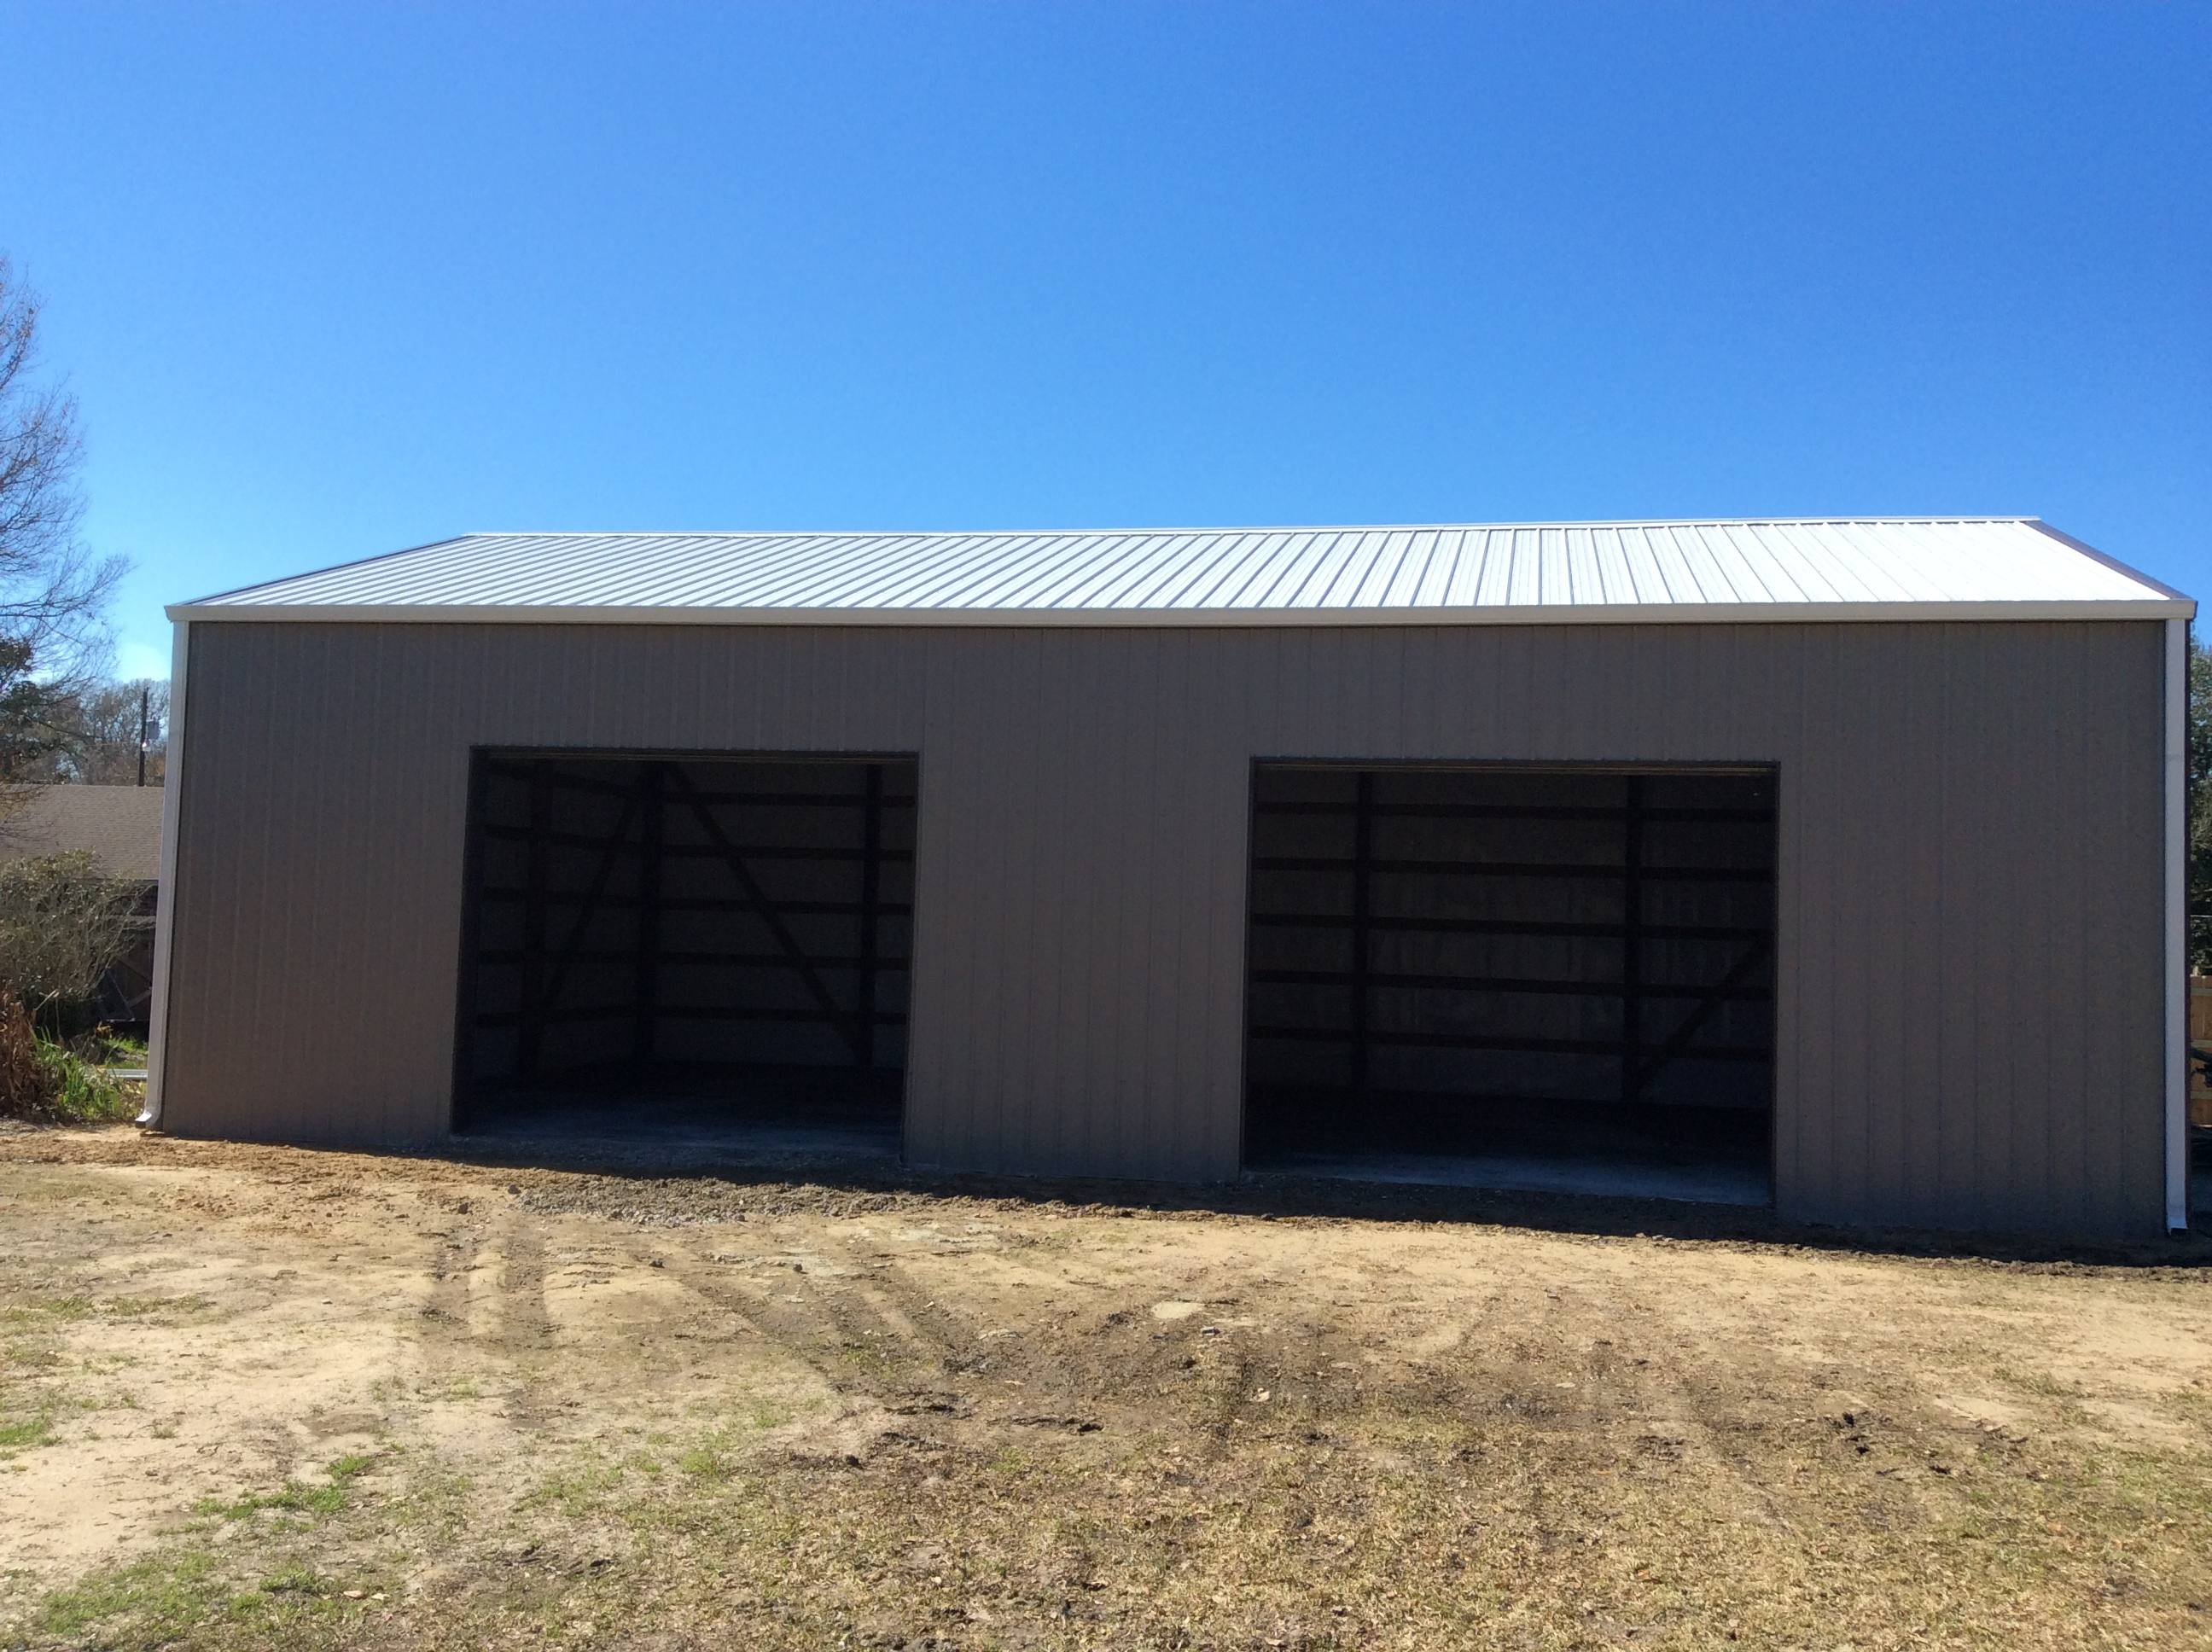 Mallett buildings post frame pole barn builders licenced bonded and insured for Design your own metal building home